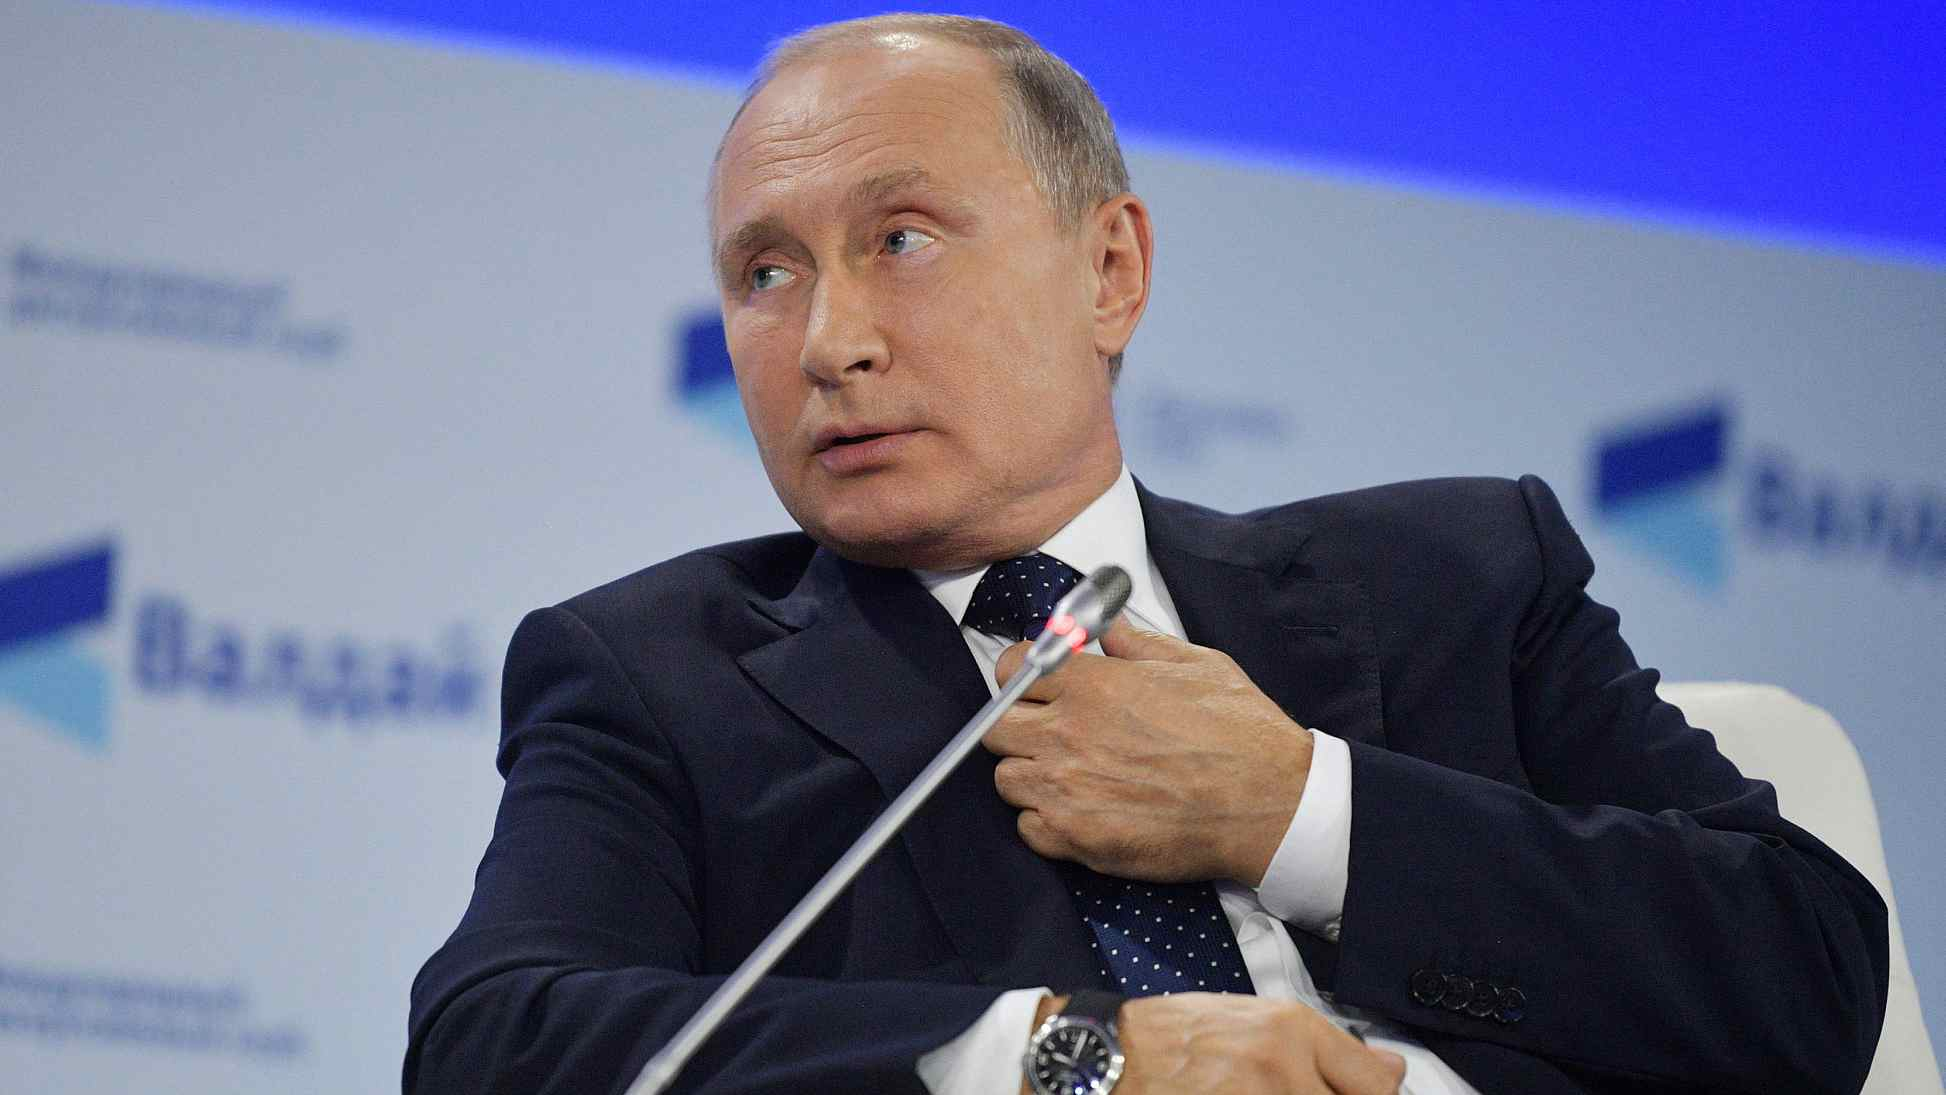 Putin says Trump listens to him and wants to repair US-Russia ties